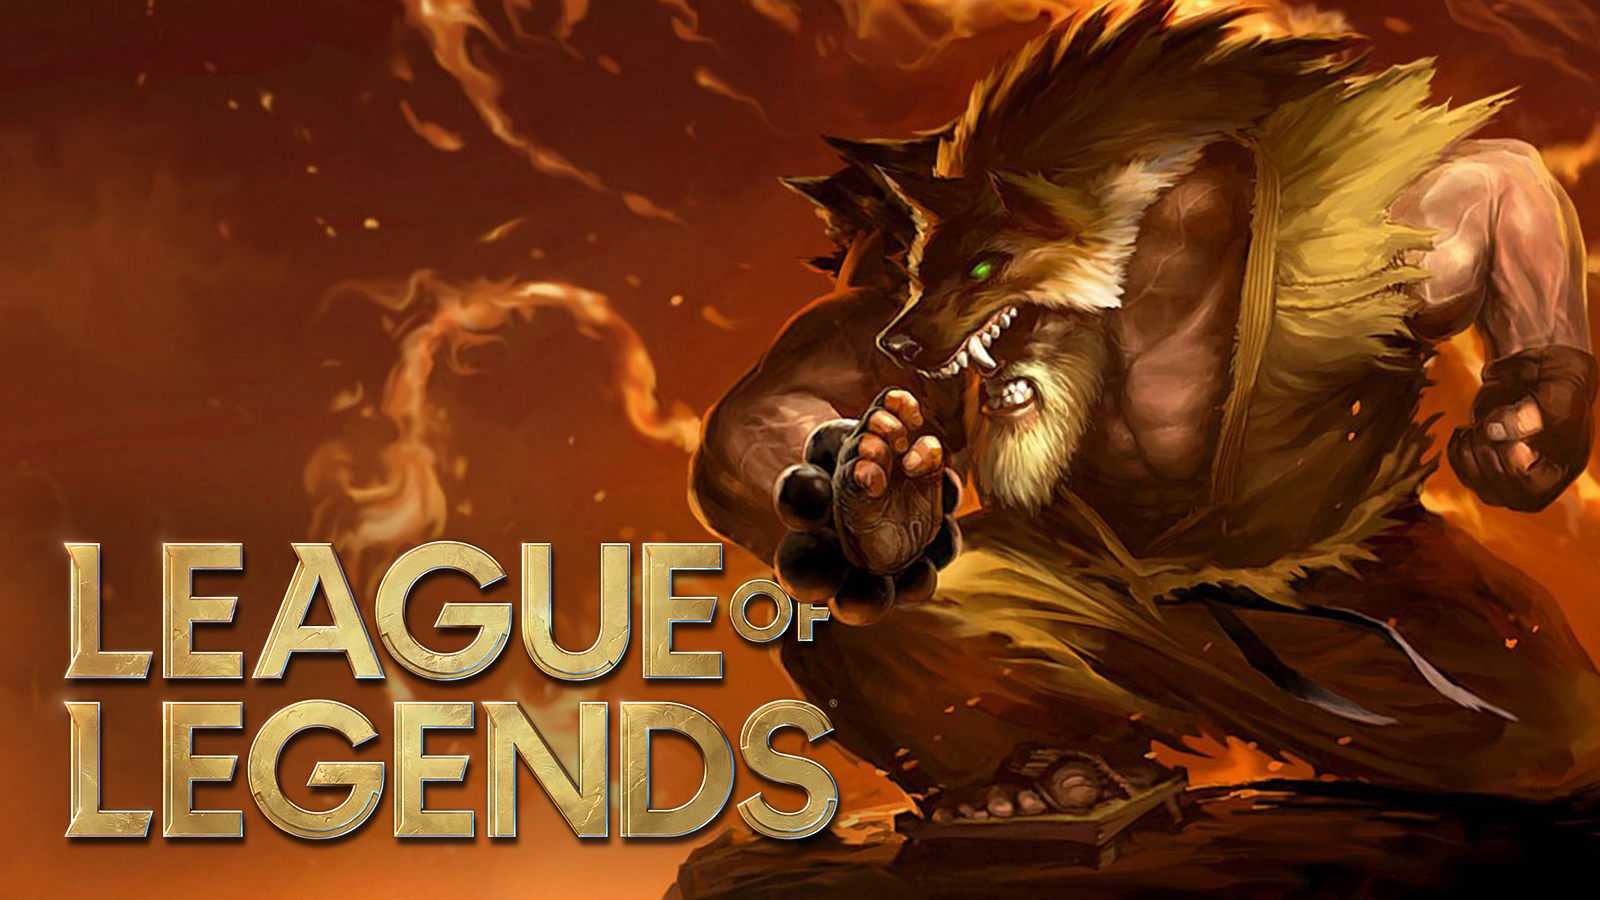 Udyr is locked in for League of Legends rework in Season 12.